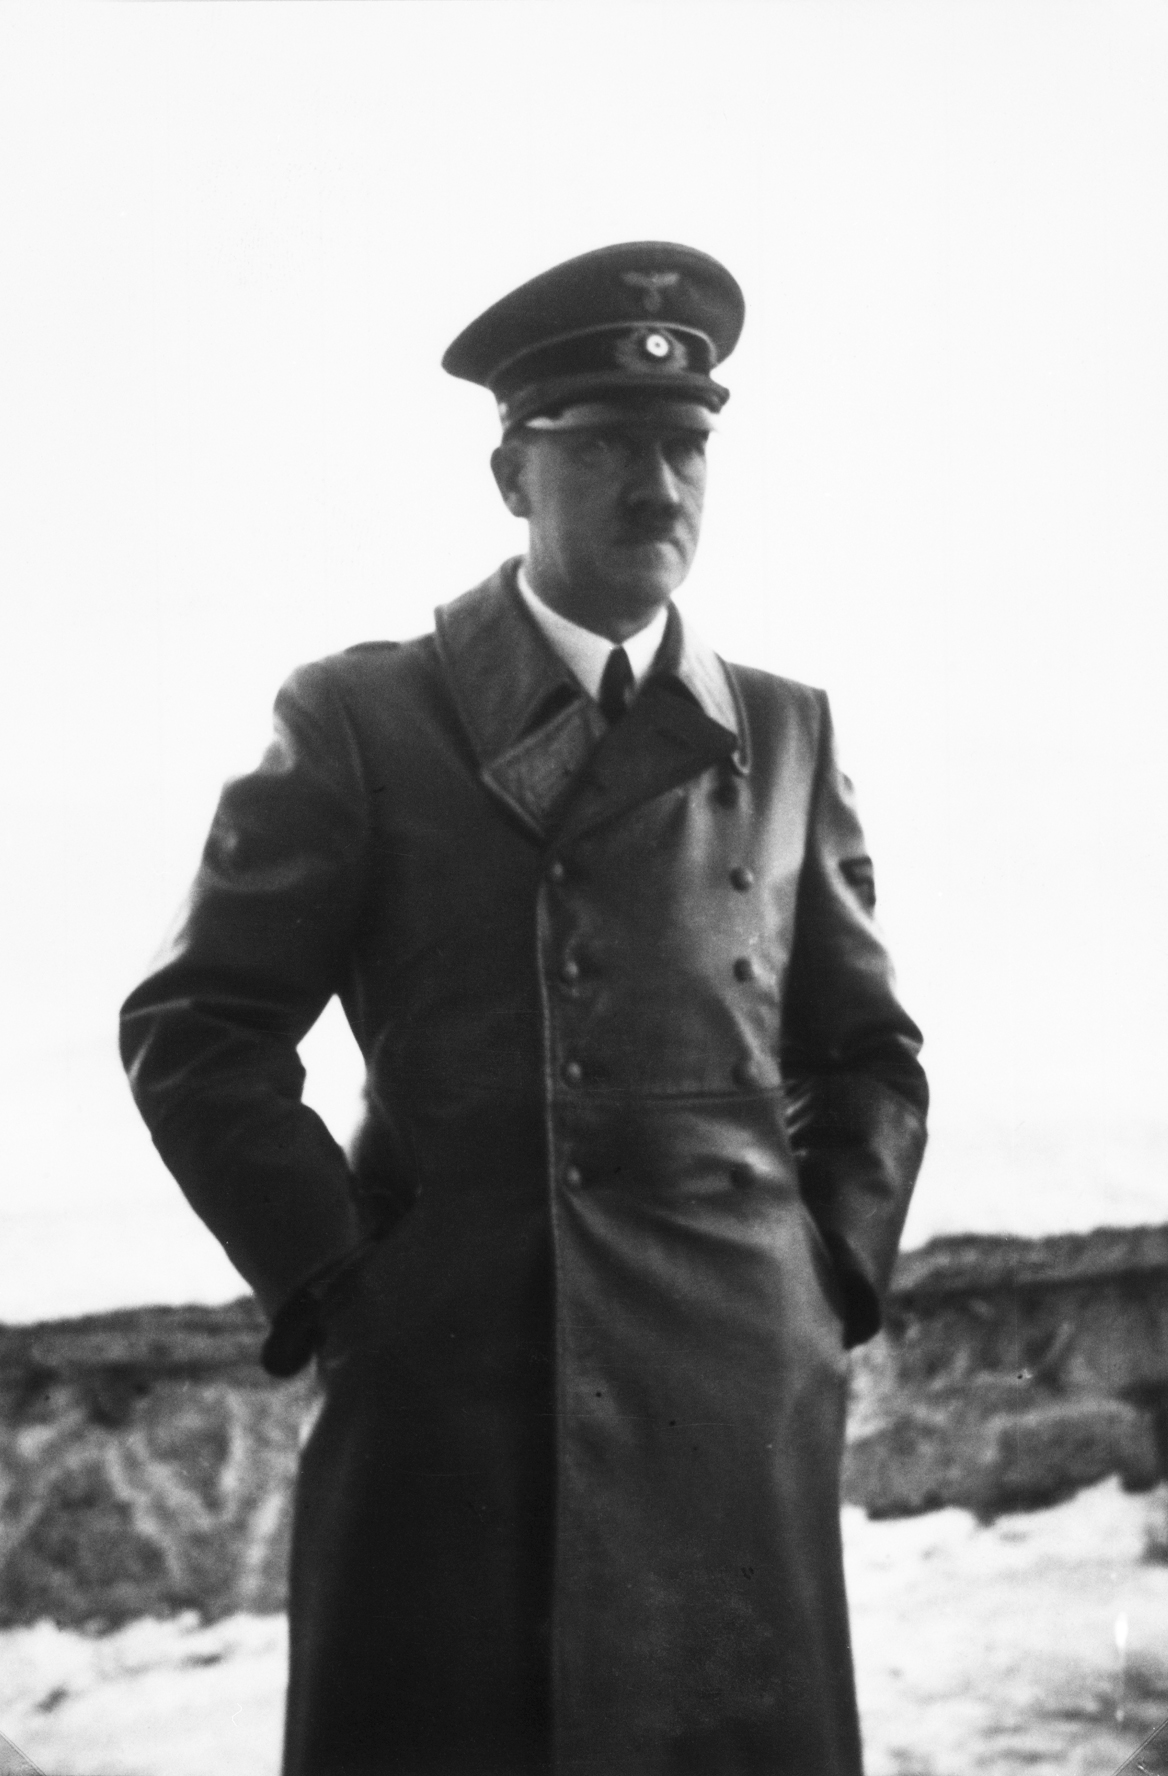 Adolf Hitler on the Berghof terrace early January 1940, from Eva Braun's albums